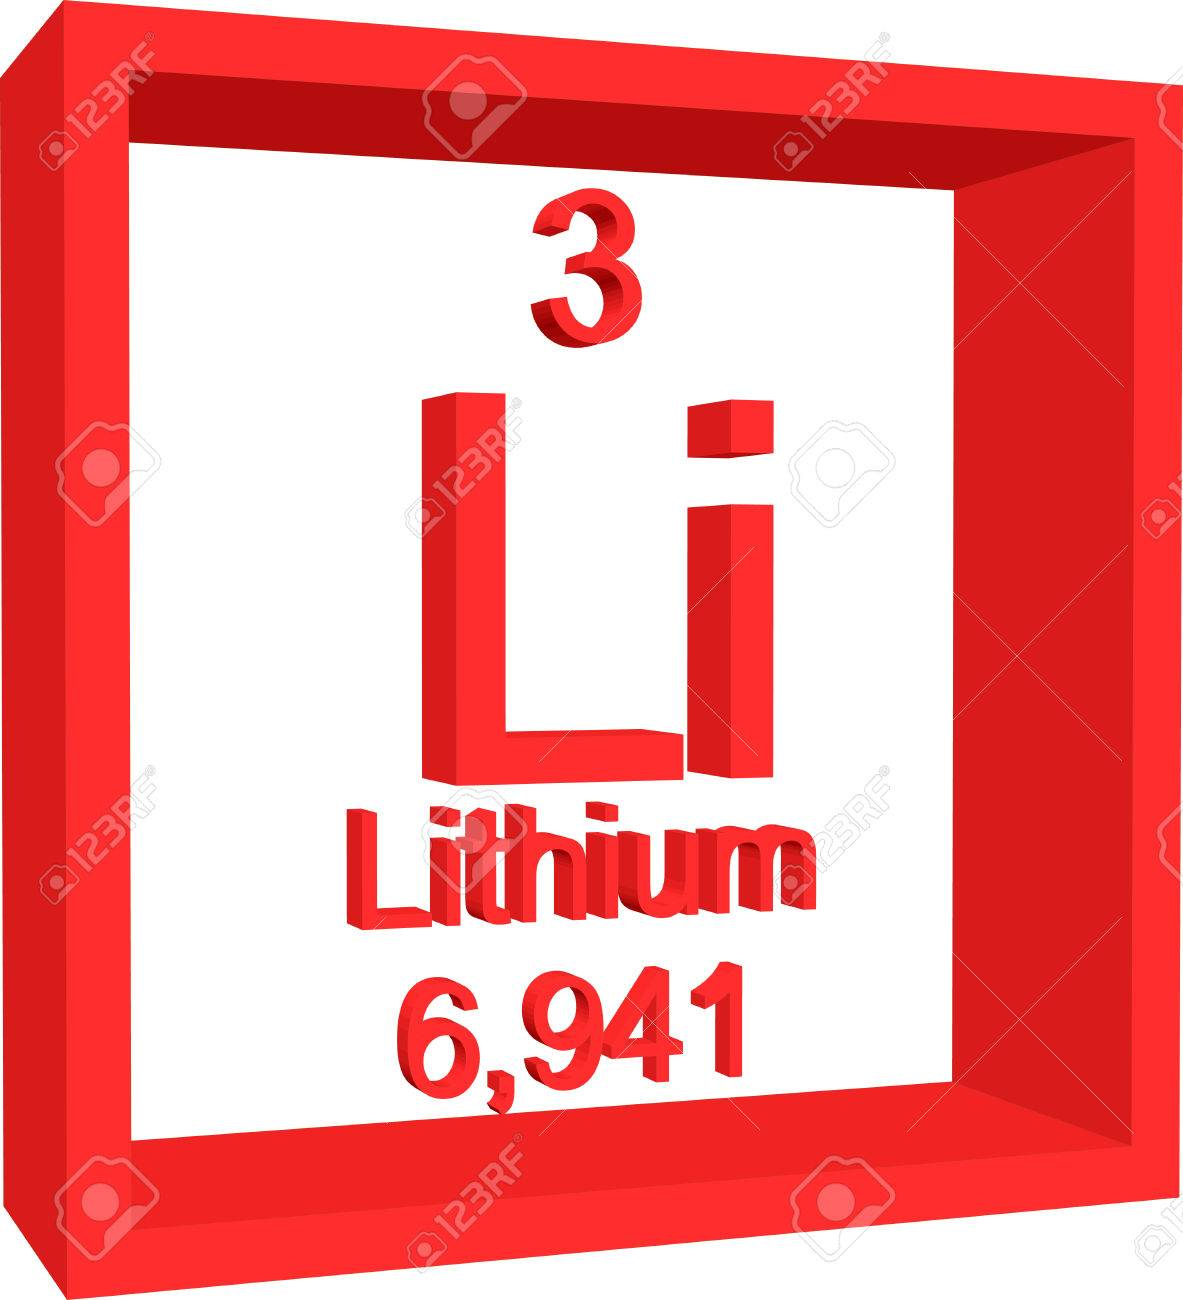 Periodic table of elements lithium royalty free cliparts vectors periodic table of elements lithium stock vector 57961298 urtaz Image collections